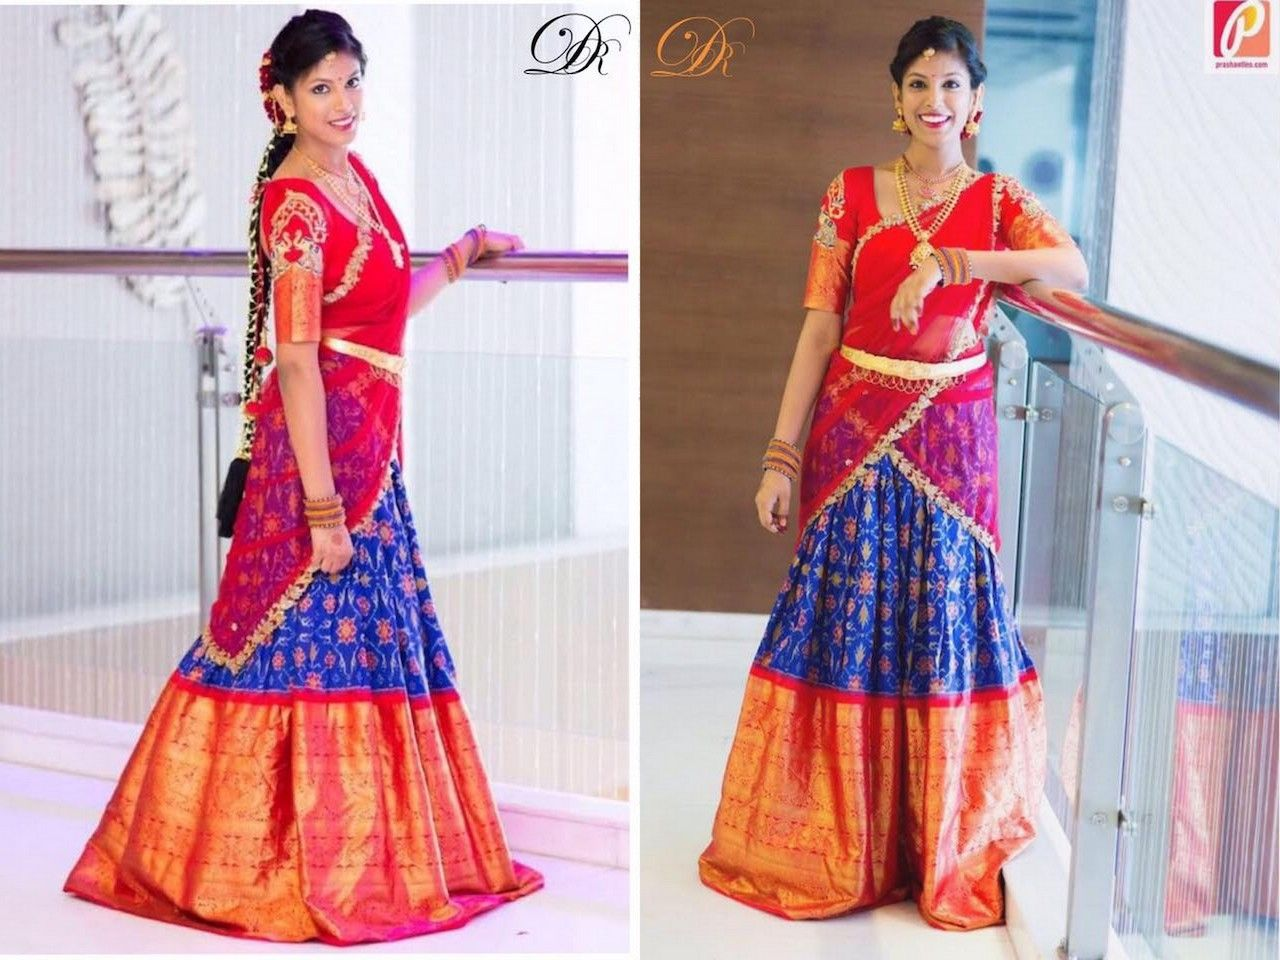 Mind Blowing Traditional Wedding Dresses Around The World: 17 Ikkat Gowns And Lehengas We Recently Fell In Love With